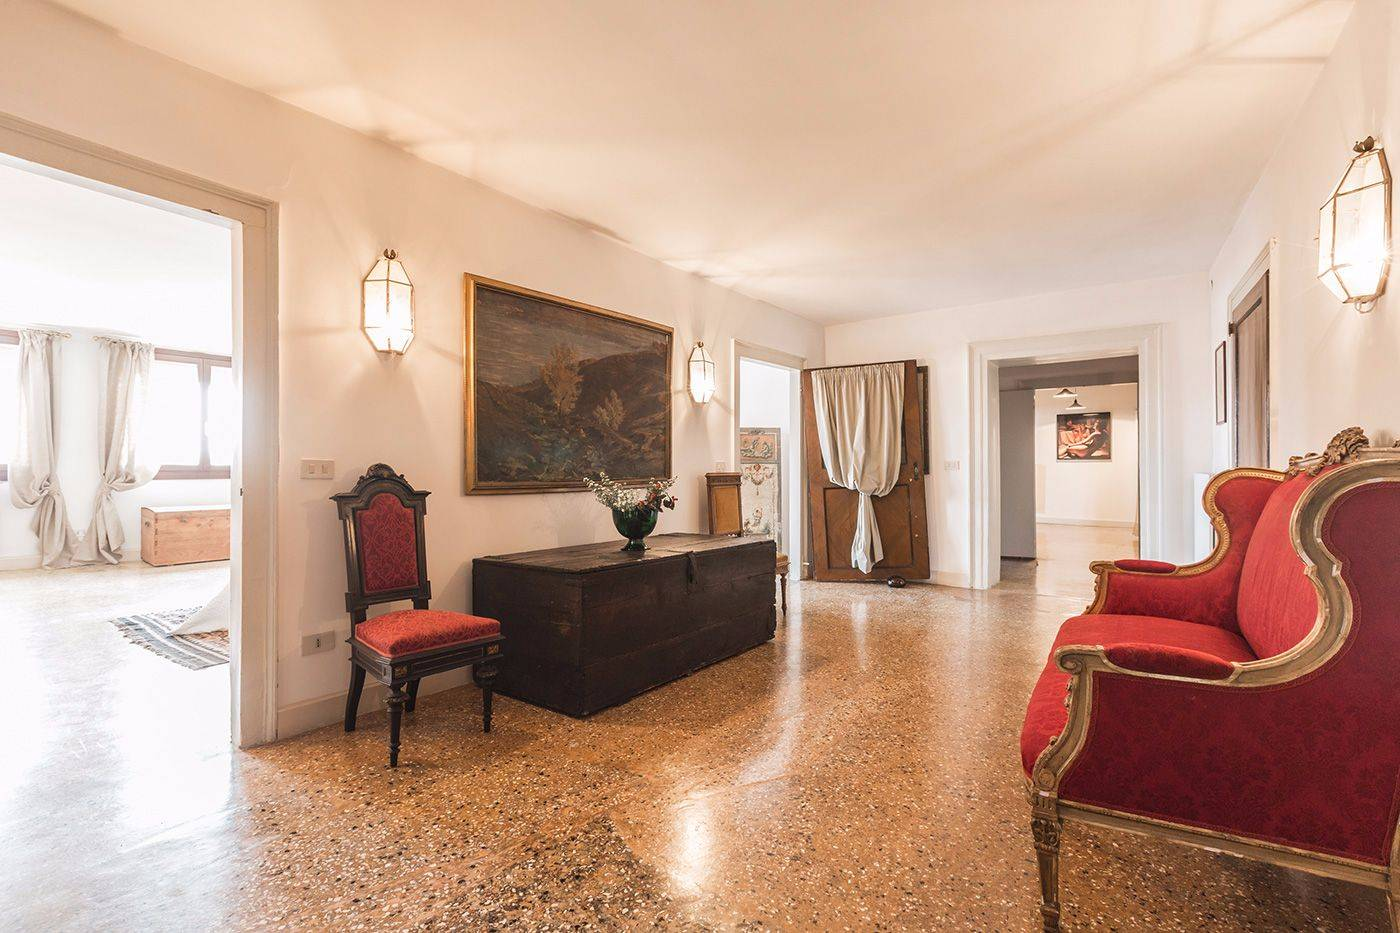 the centrally located entrance room with gives access to all bedrooms